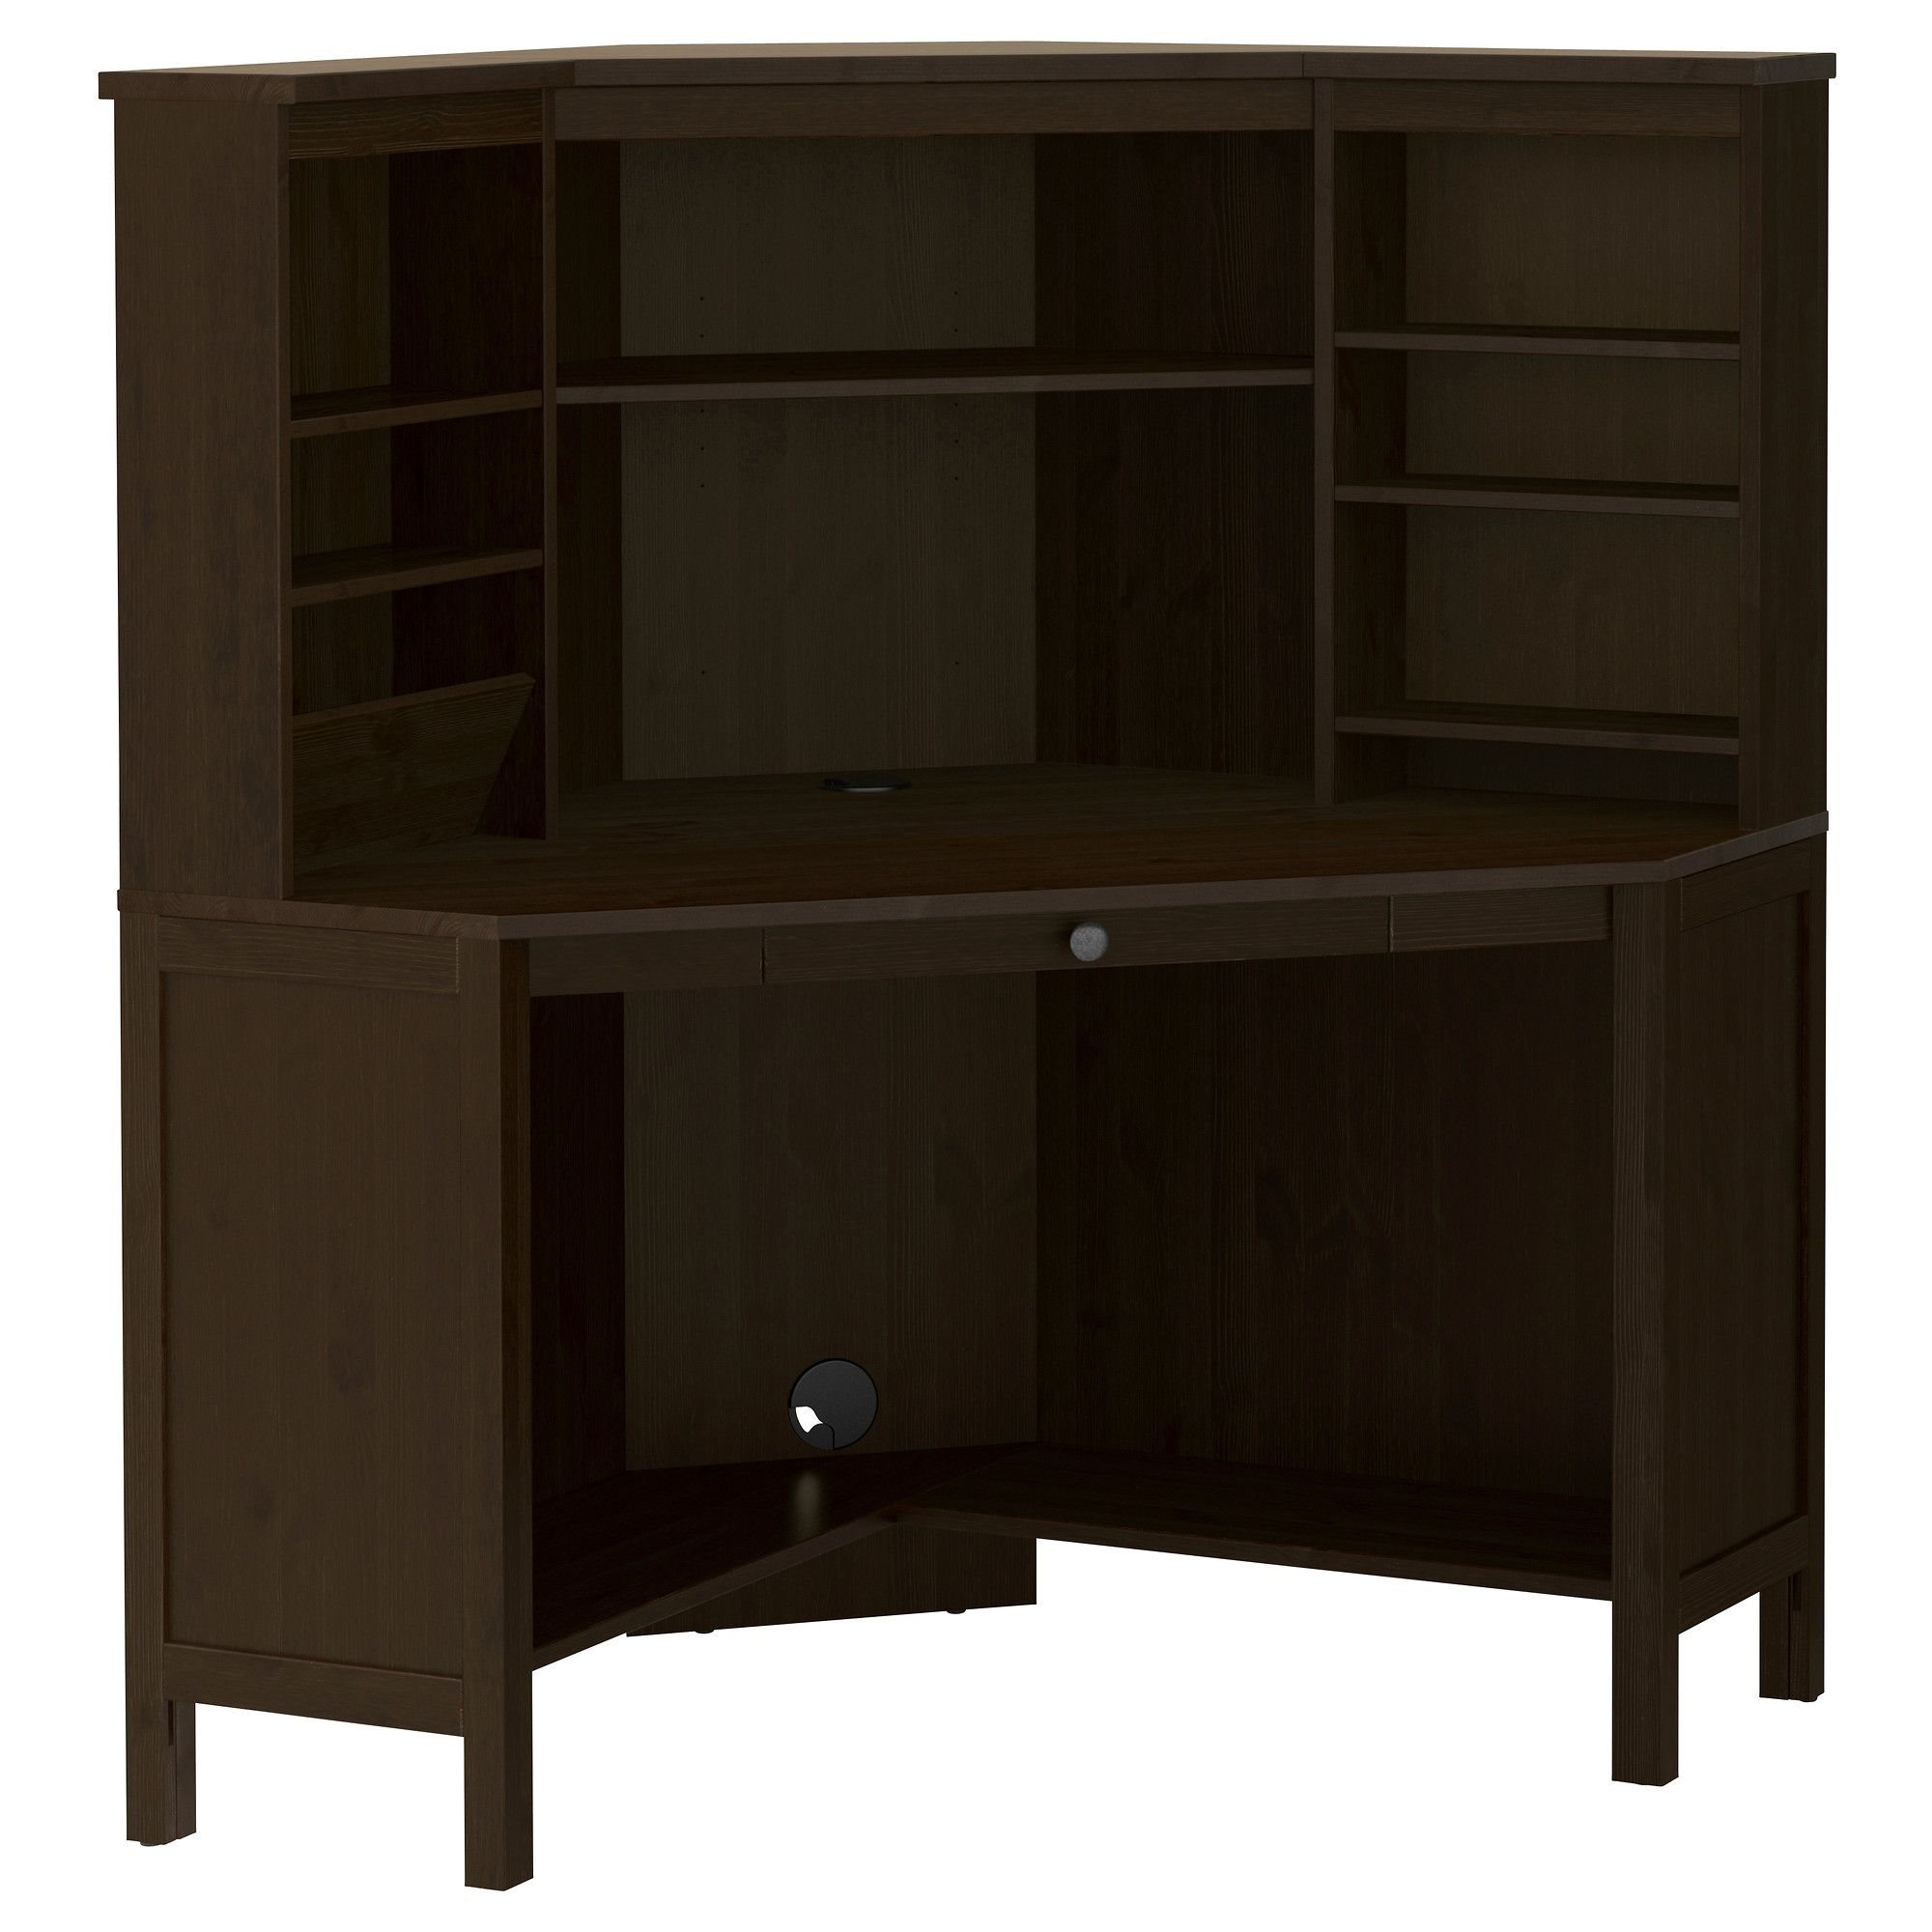 en material computer brown products solid ikea is a unit hemnes desk natural add on wood light durable gb cm spr desks with